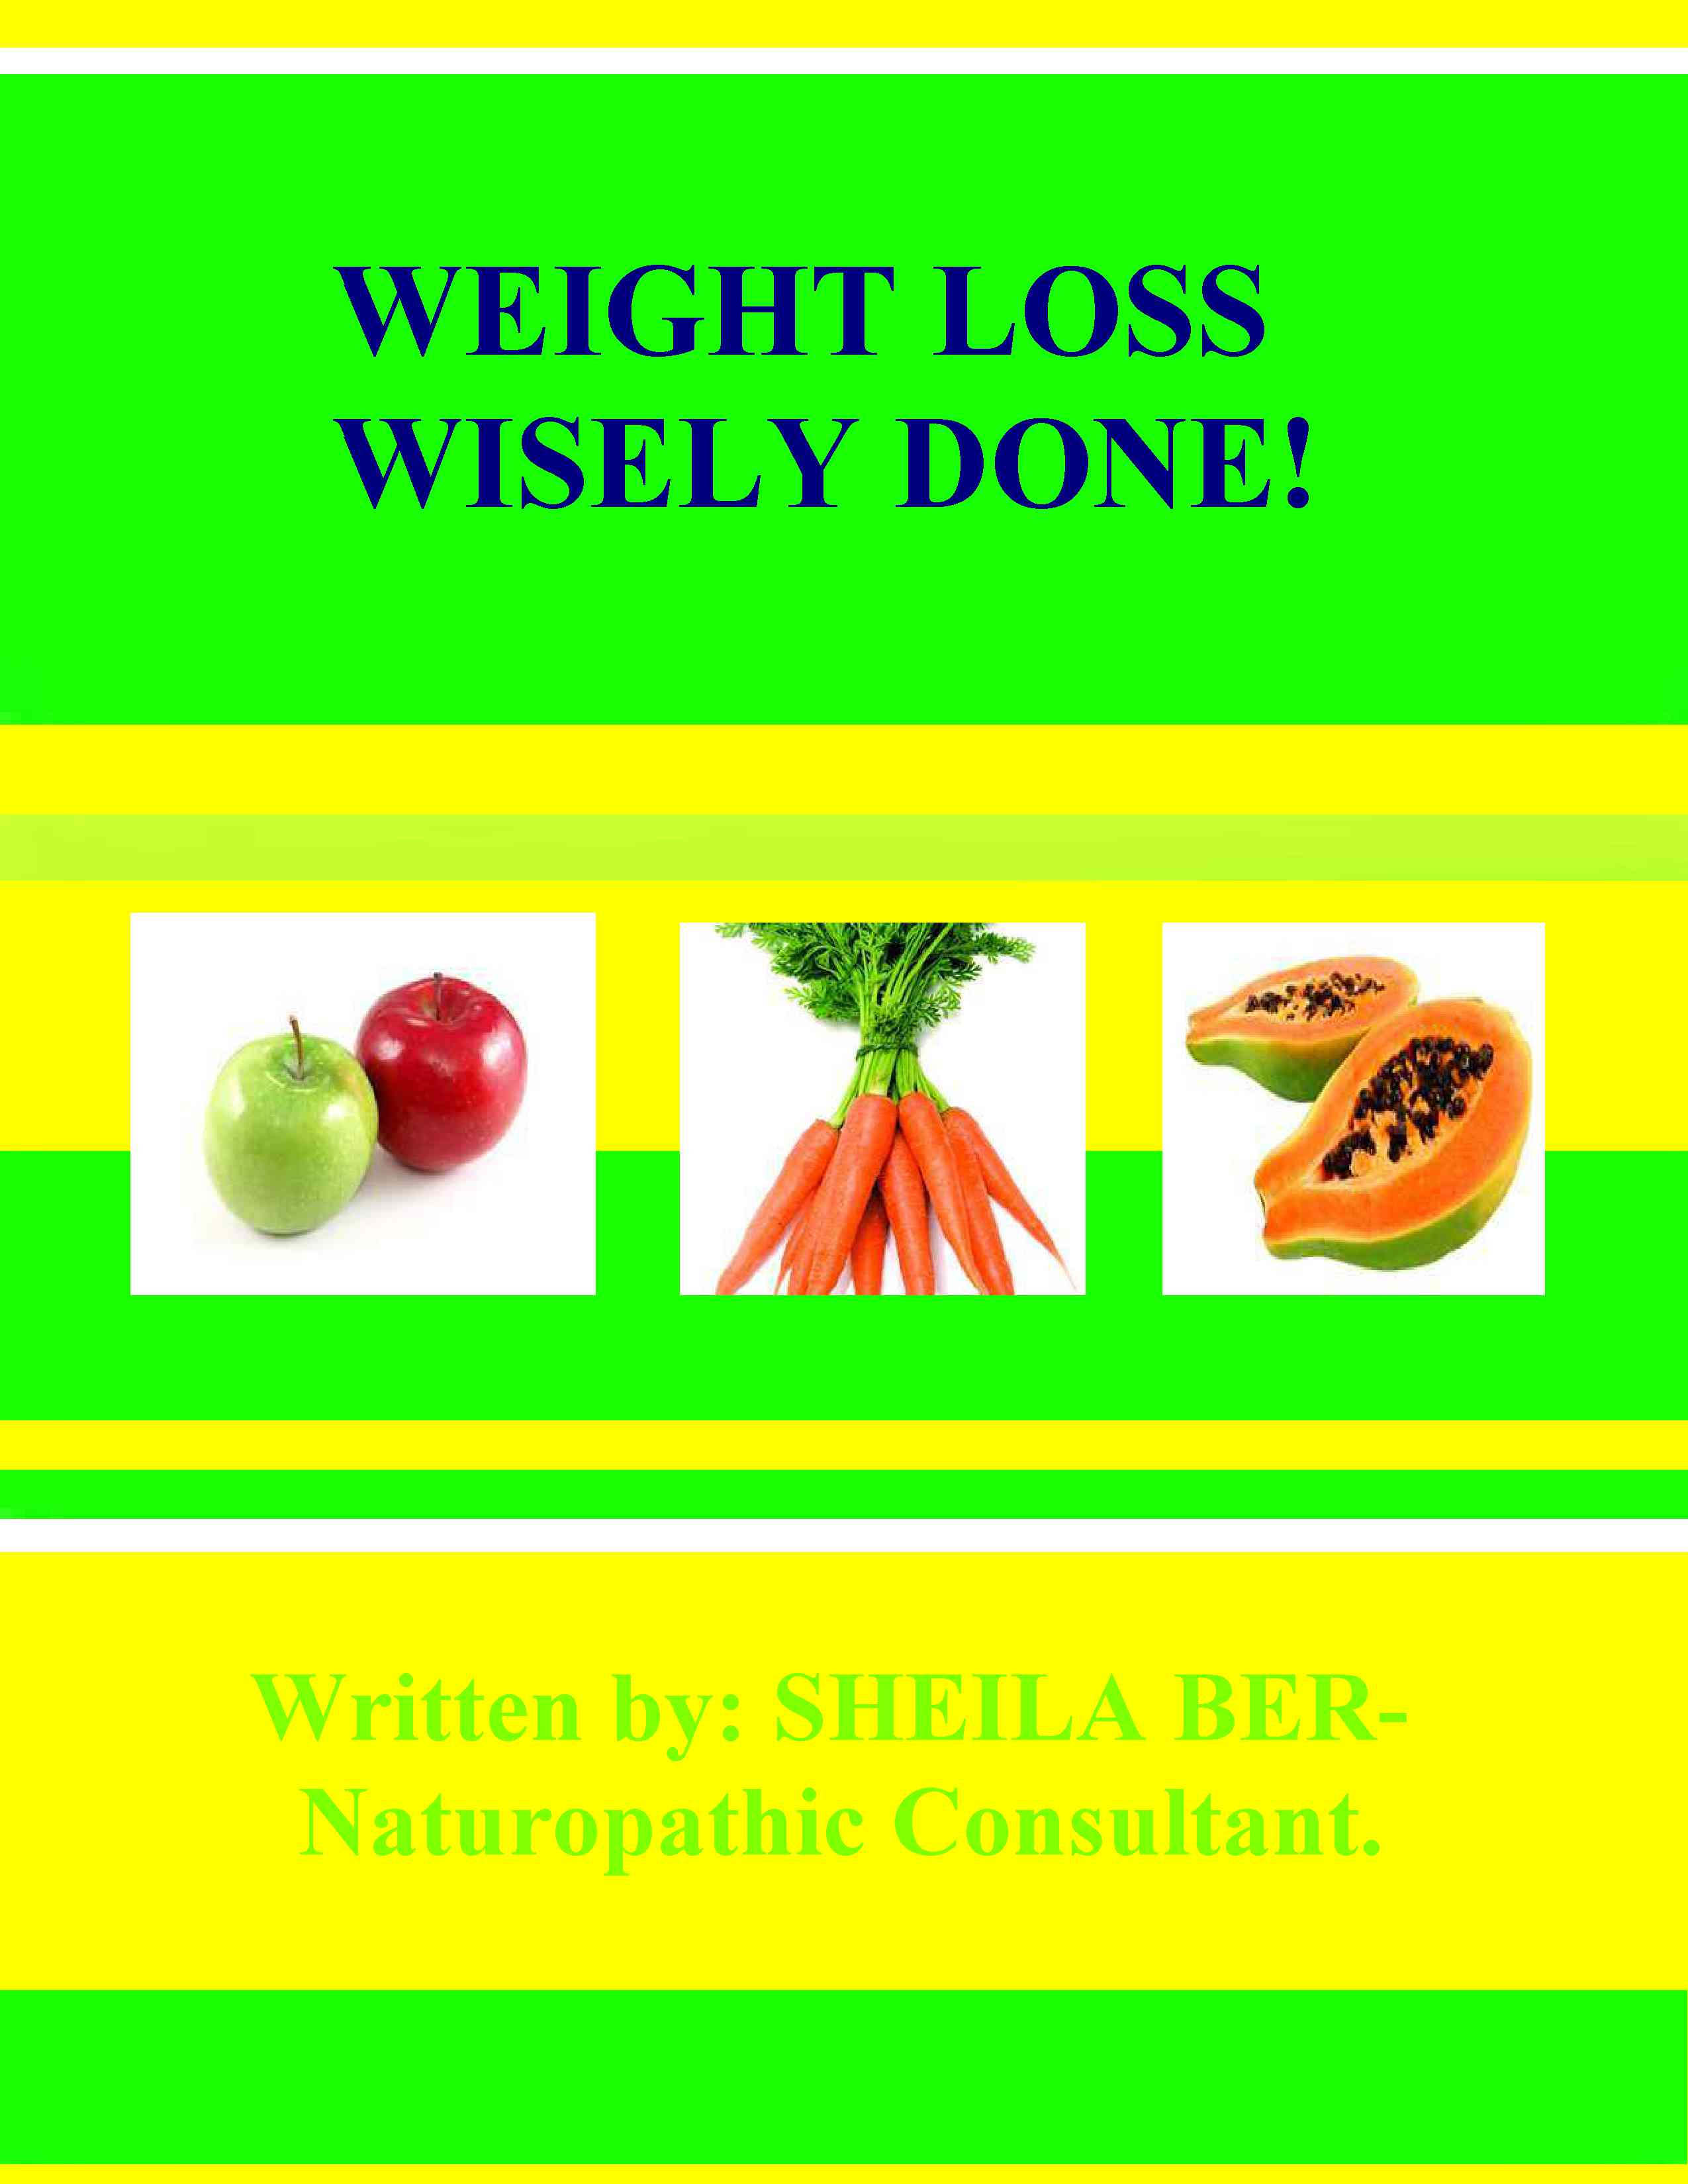 WEIGHT LOSS WISELY DONE! - By SHEILA BER